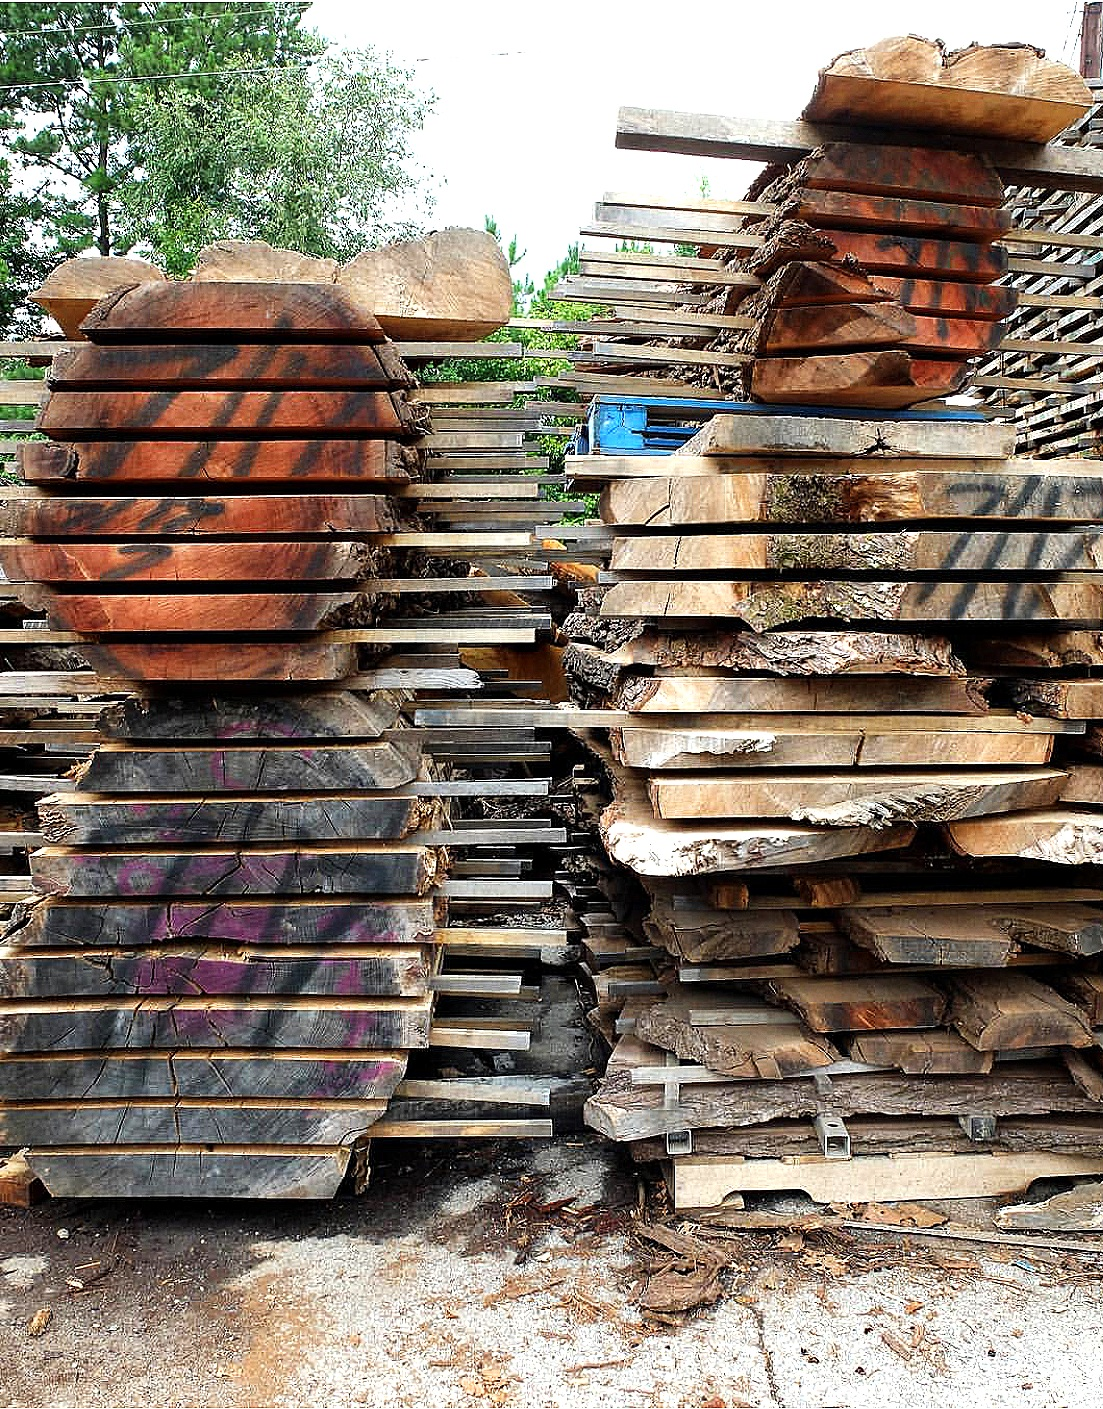 Slabs are slowly air dried in the Eutree lumberyard for 12-18 months prior to entering the kilns.